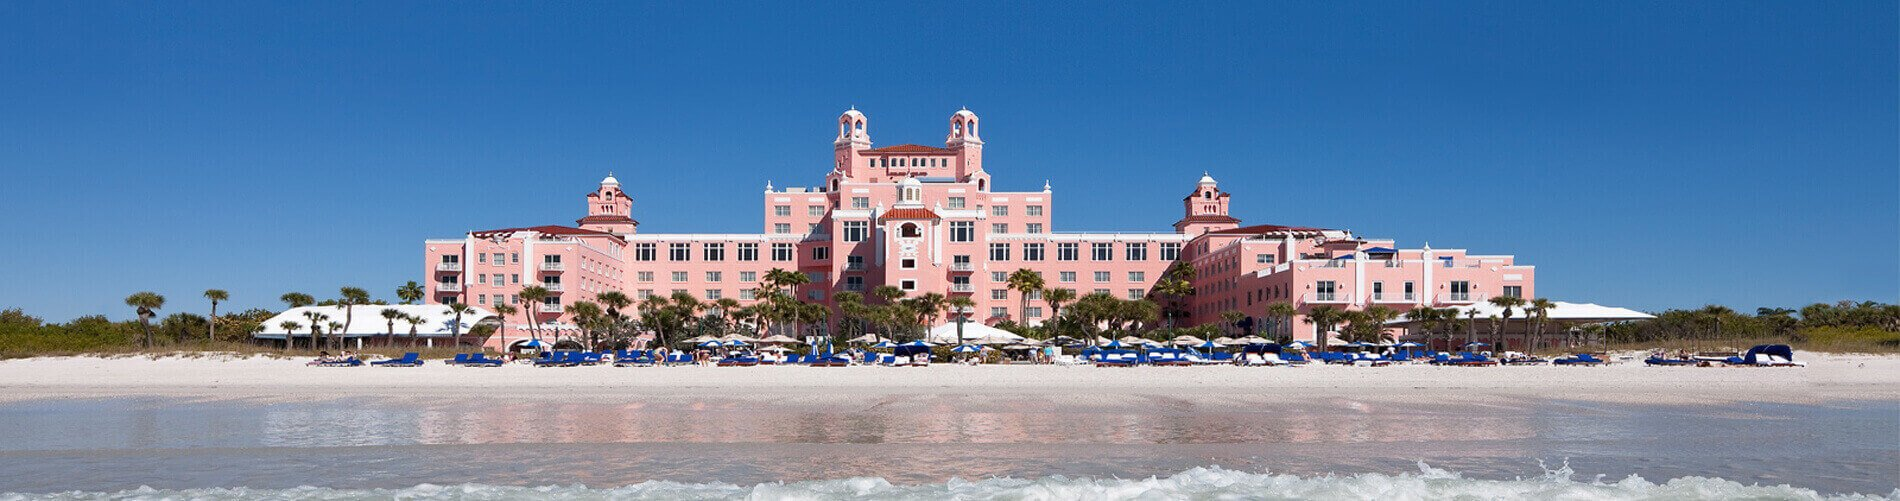 Don Cesar, a pink hotel located on the beach in Florida